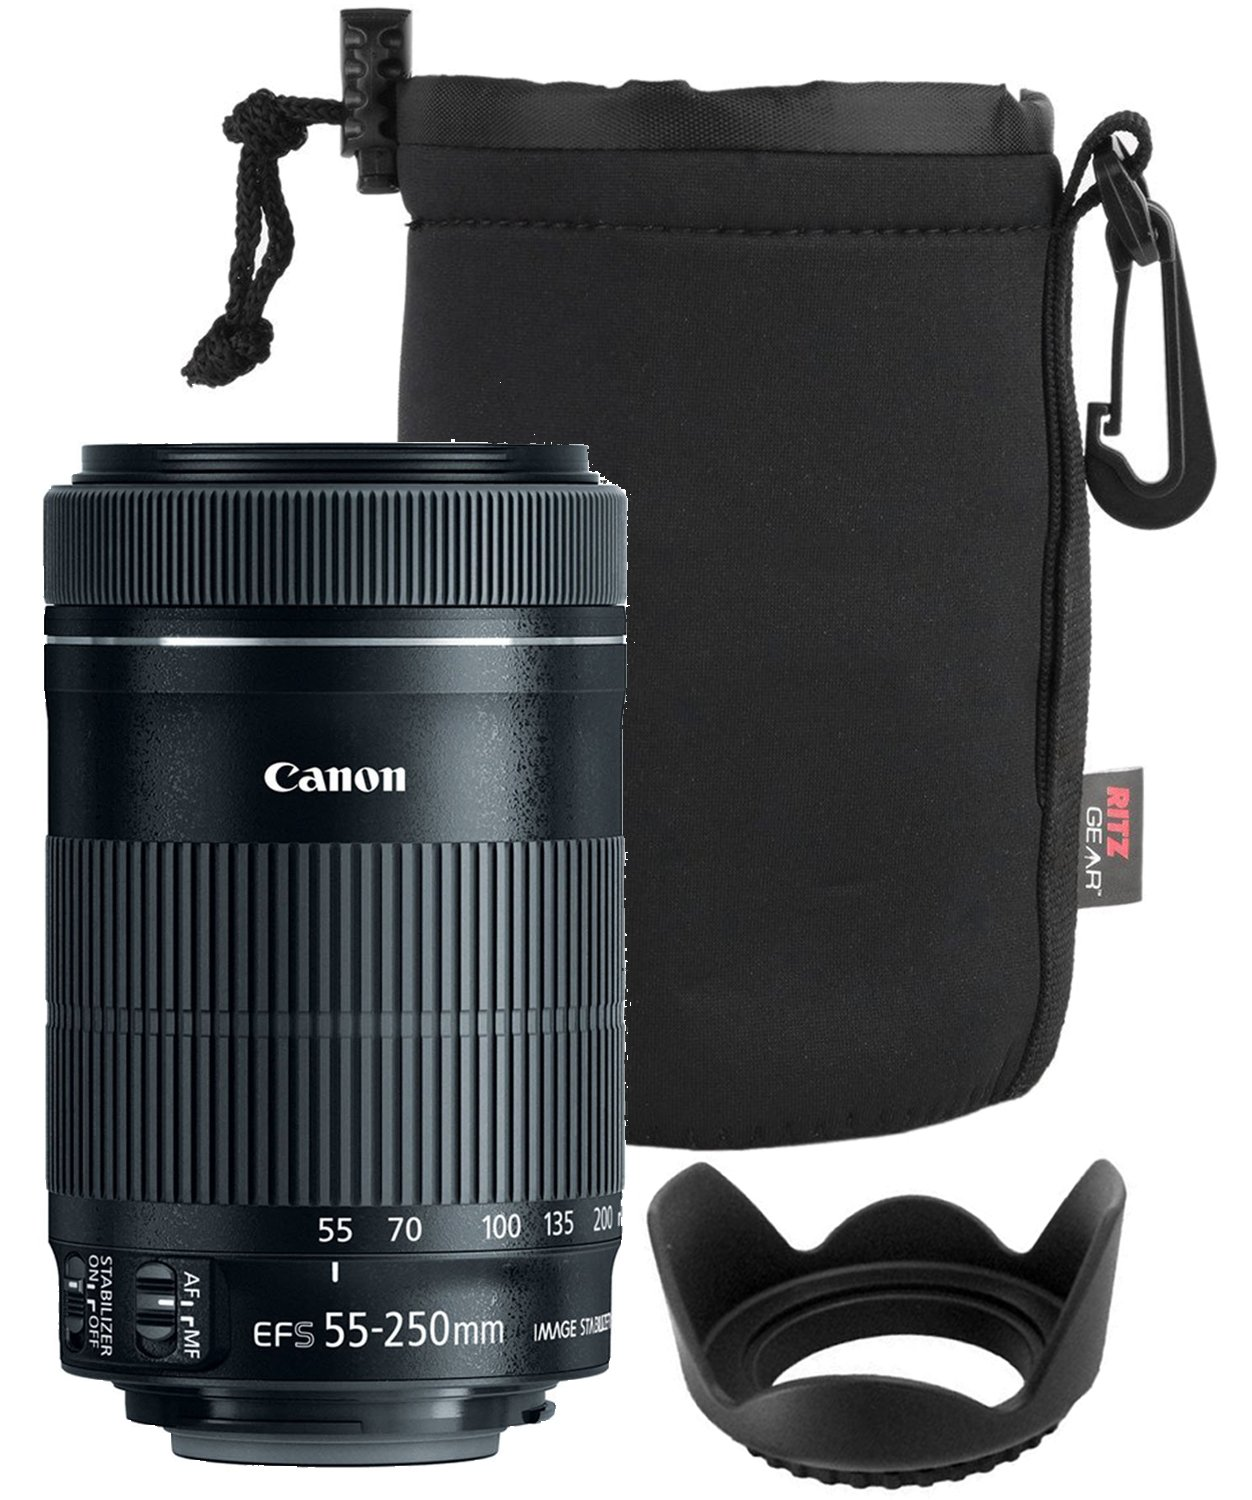 Canon EF-S 55-250mm F4-5.6 is Mark II Lens for Canon SLR Cameras + 58mm Polaroid Tulip Lens Hood + Ritz Gear Large Neoprene Protective Lens Pouch Bundle by Canon